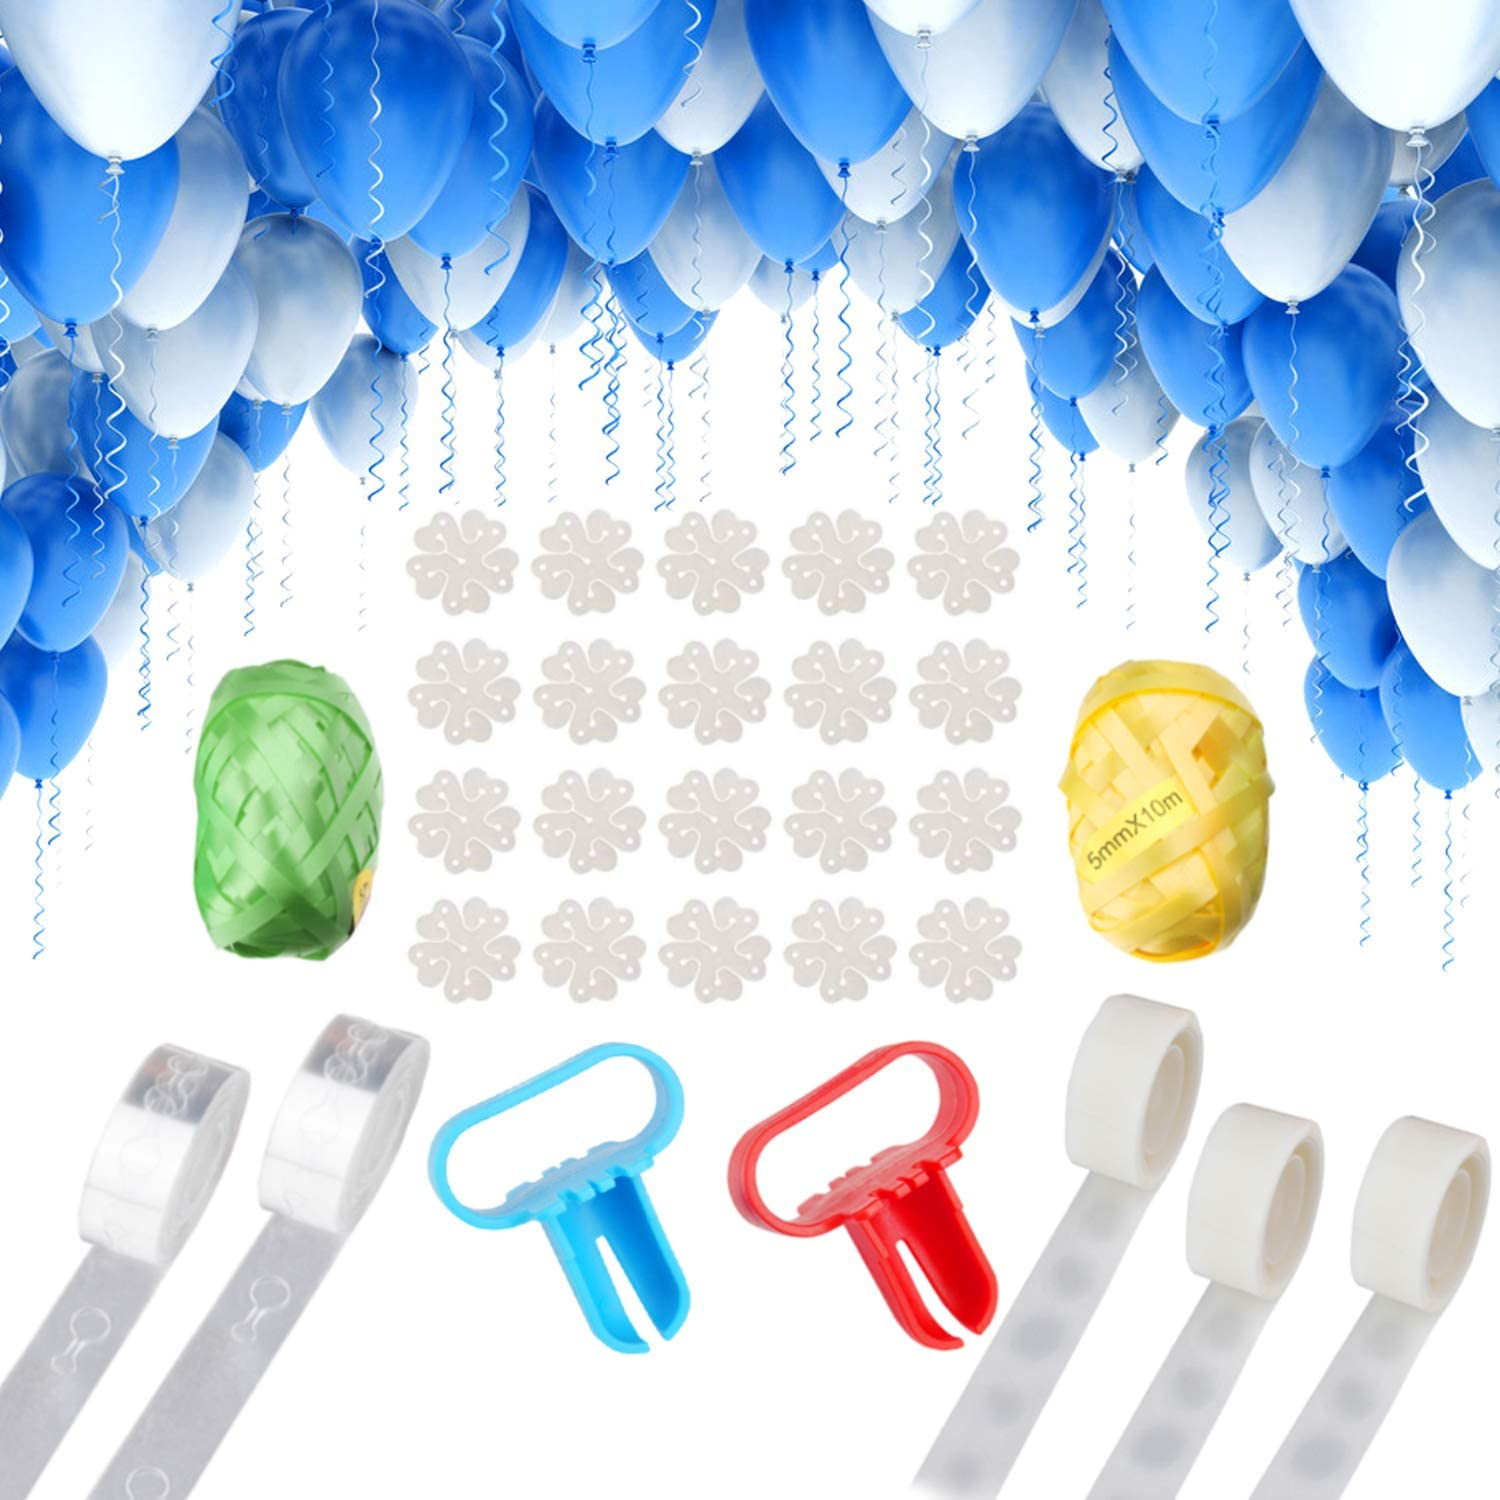 Upgraded Version Okreview Balloon Arch Garland Decorating Strip Kit 4 Rolls Balloon Tape Strips with 4 Rolls Balloon Glue Point Dots Stickers